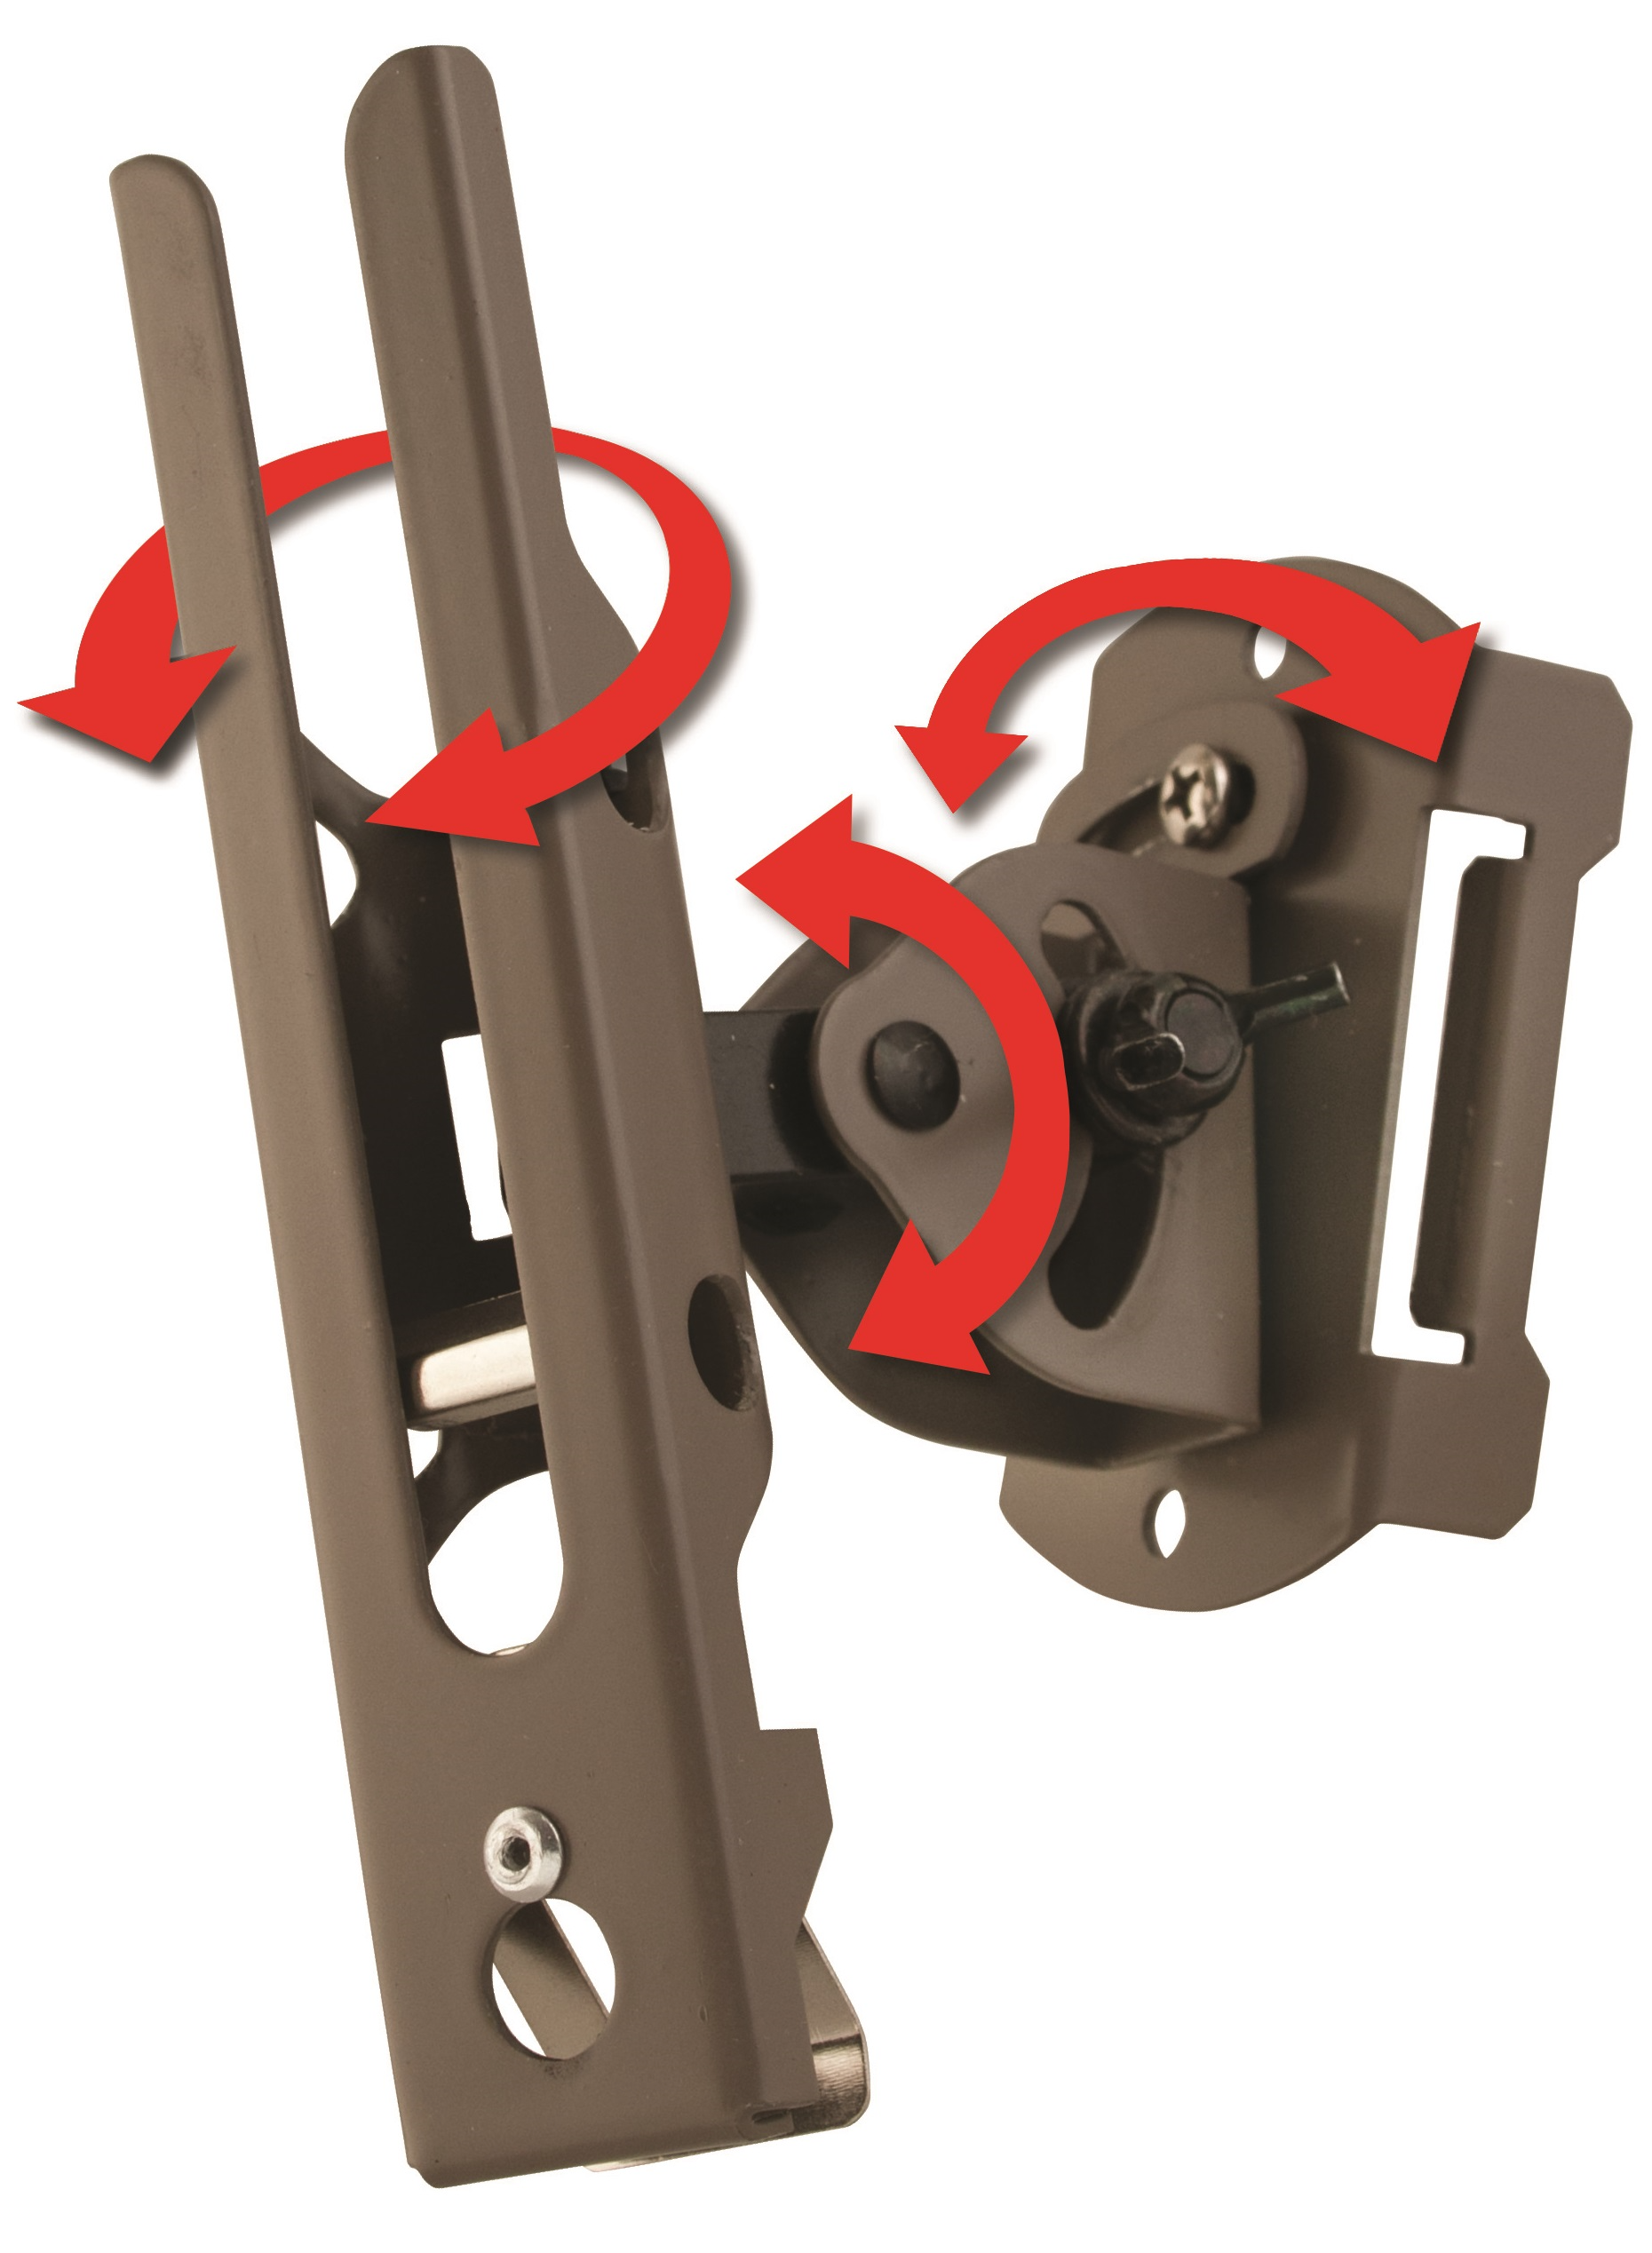 Cuddeback Genius Pan Tilt Lock Camera Mounts - Brown